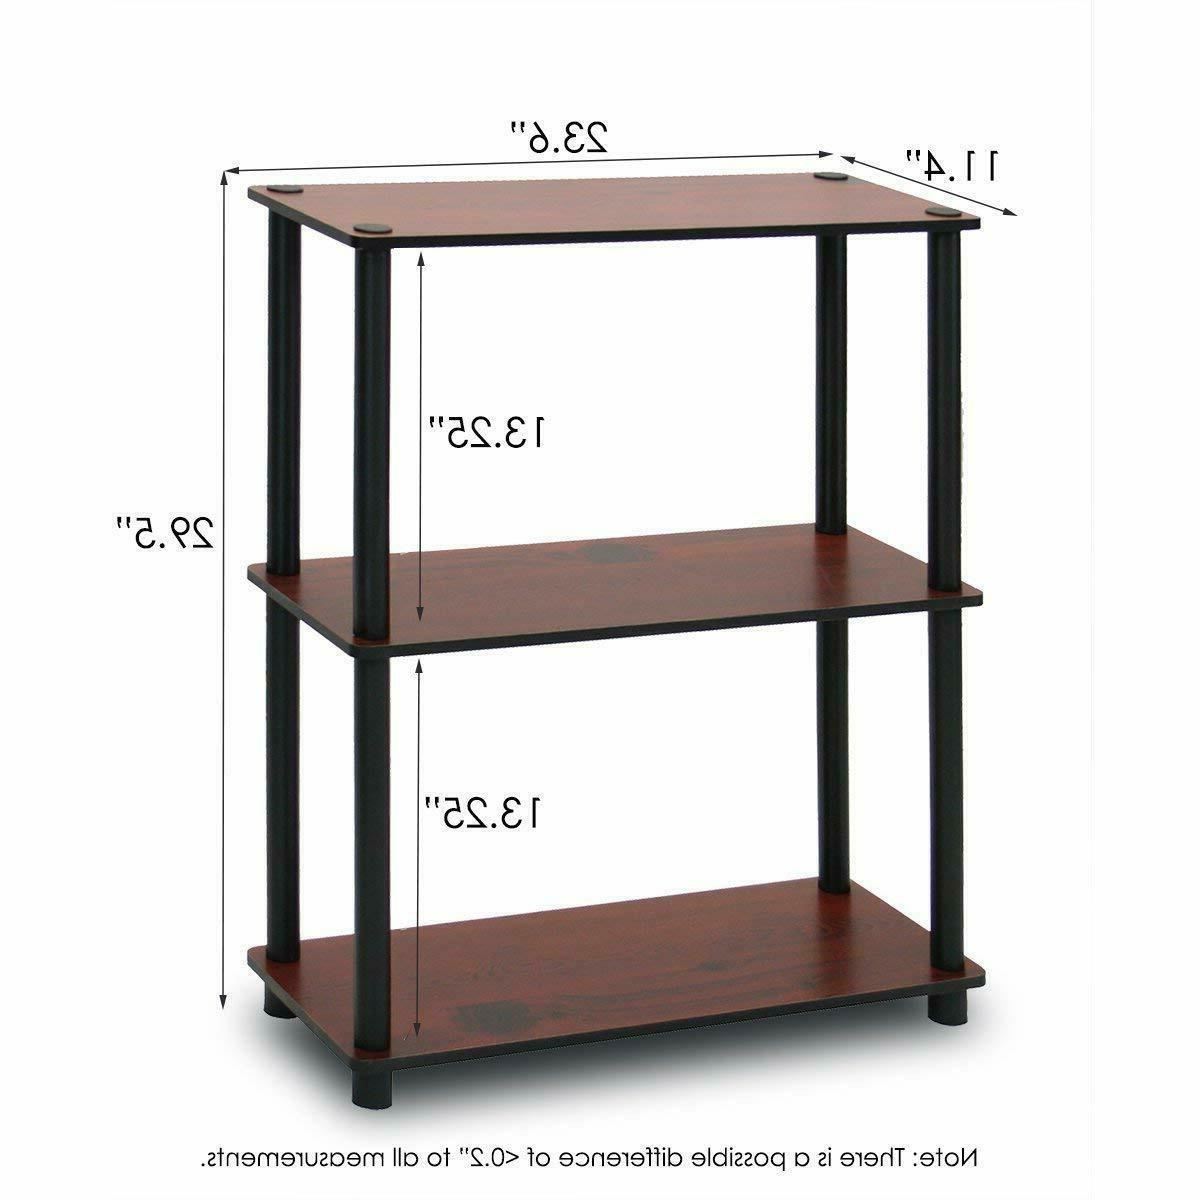 Furinno 10024DC/BK Compact Multipurpose Shelf Rack